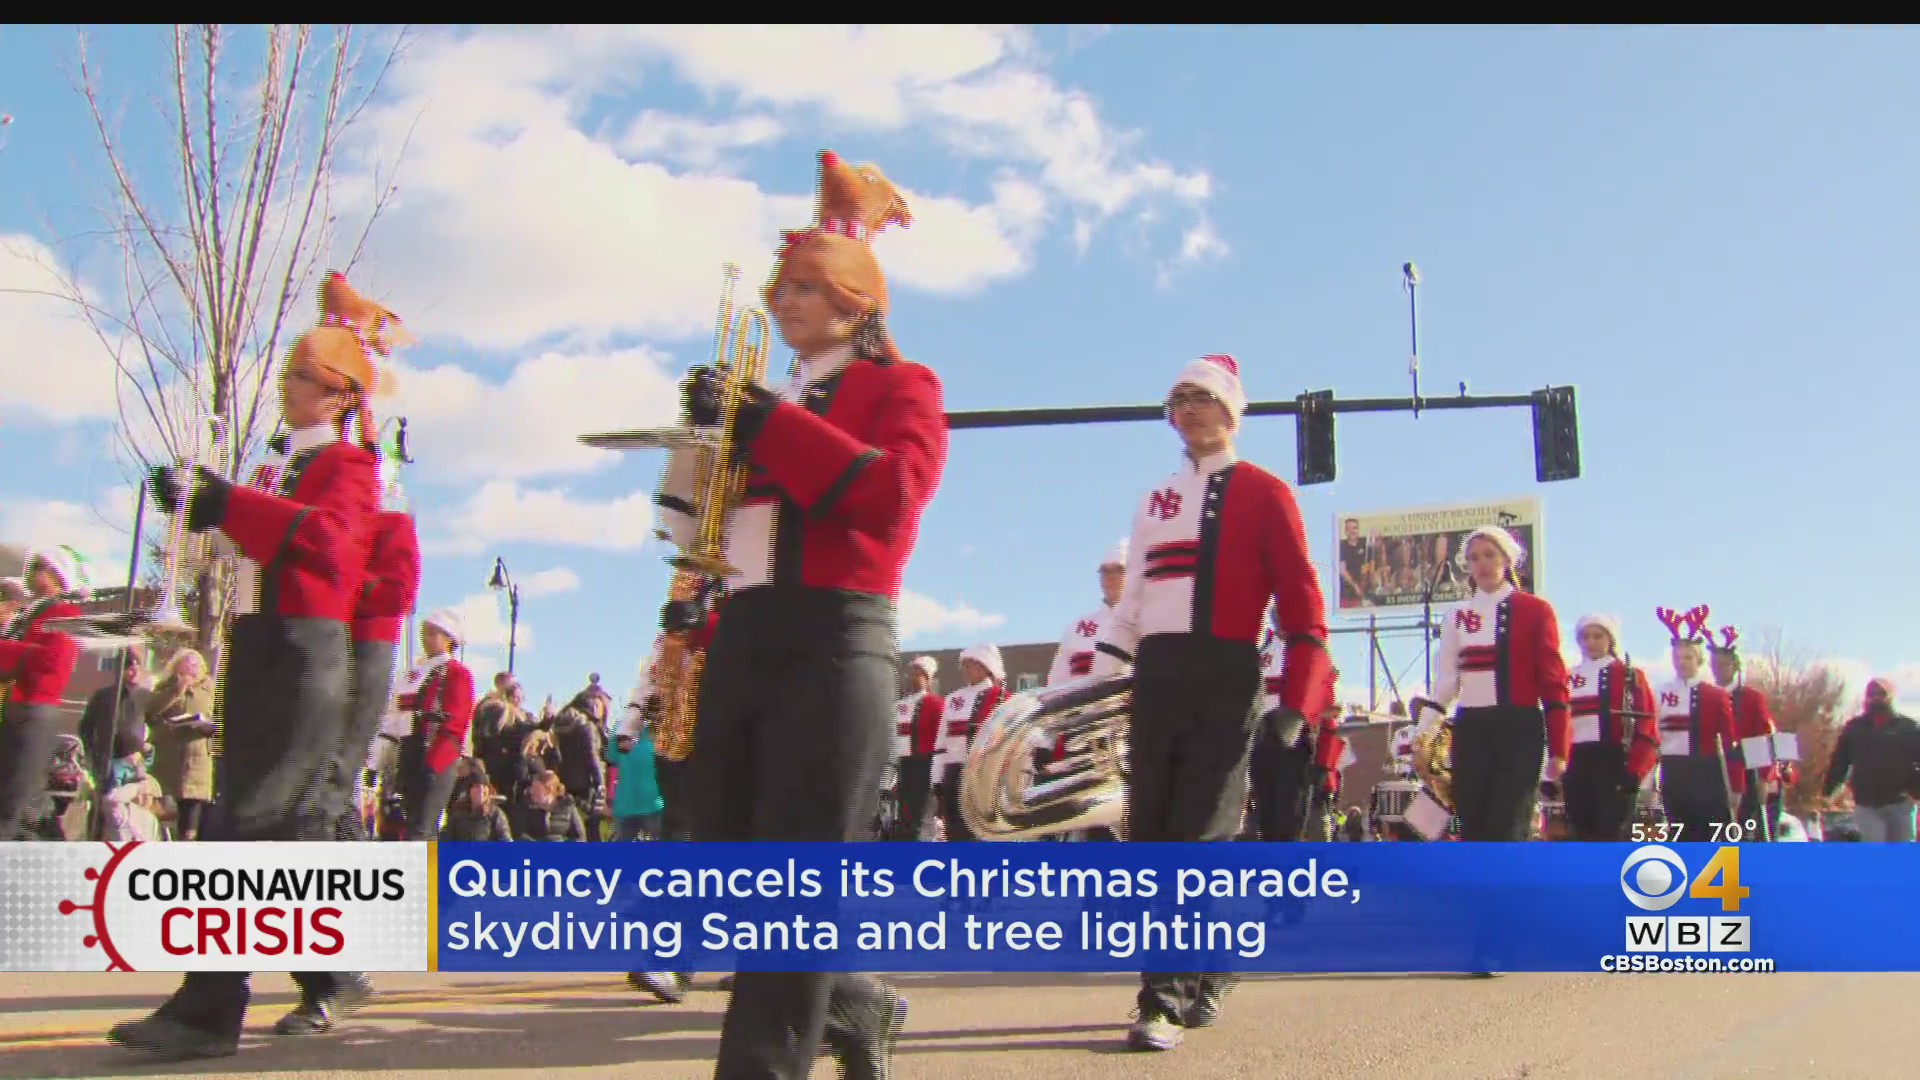 Quincy Christmas Parade 2020 Adress Quincy Cancels Christmas Parade, Skydiving Santa And Tree Lighting